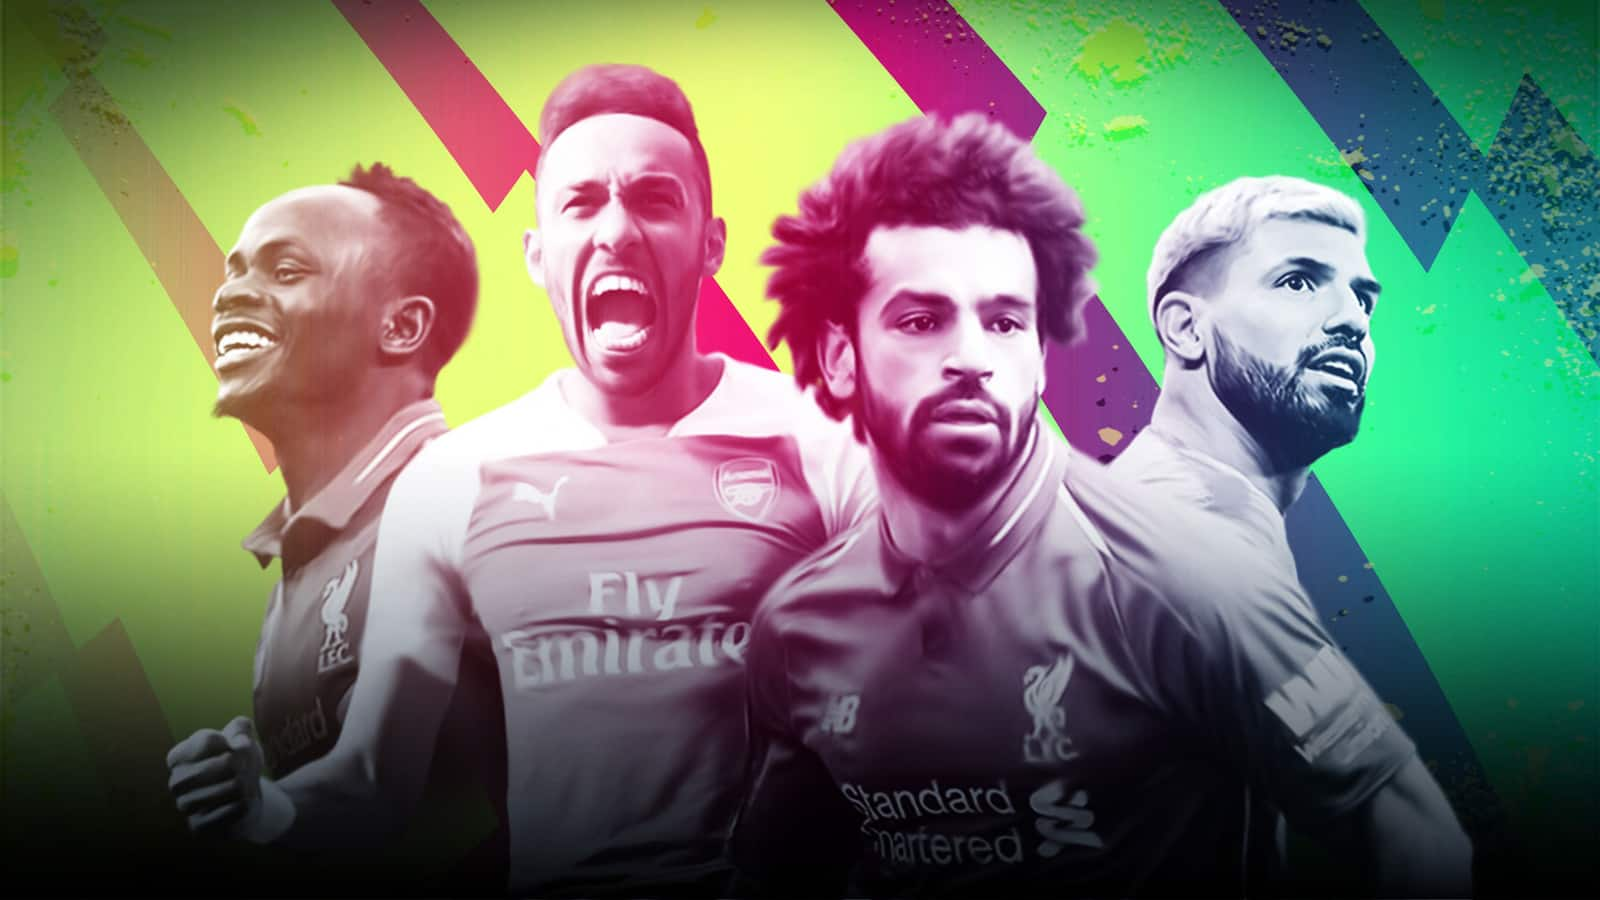 premier-league-goals-of-the-season-1819-2019